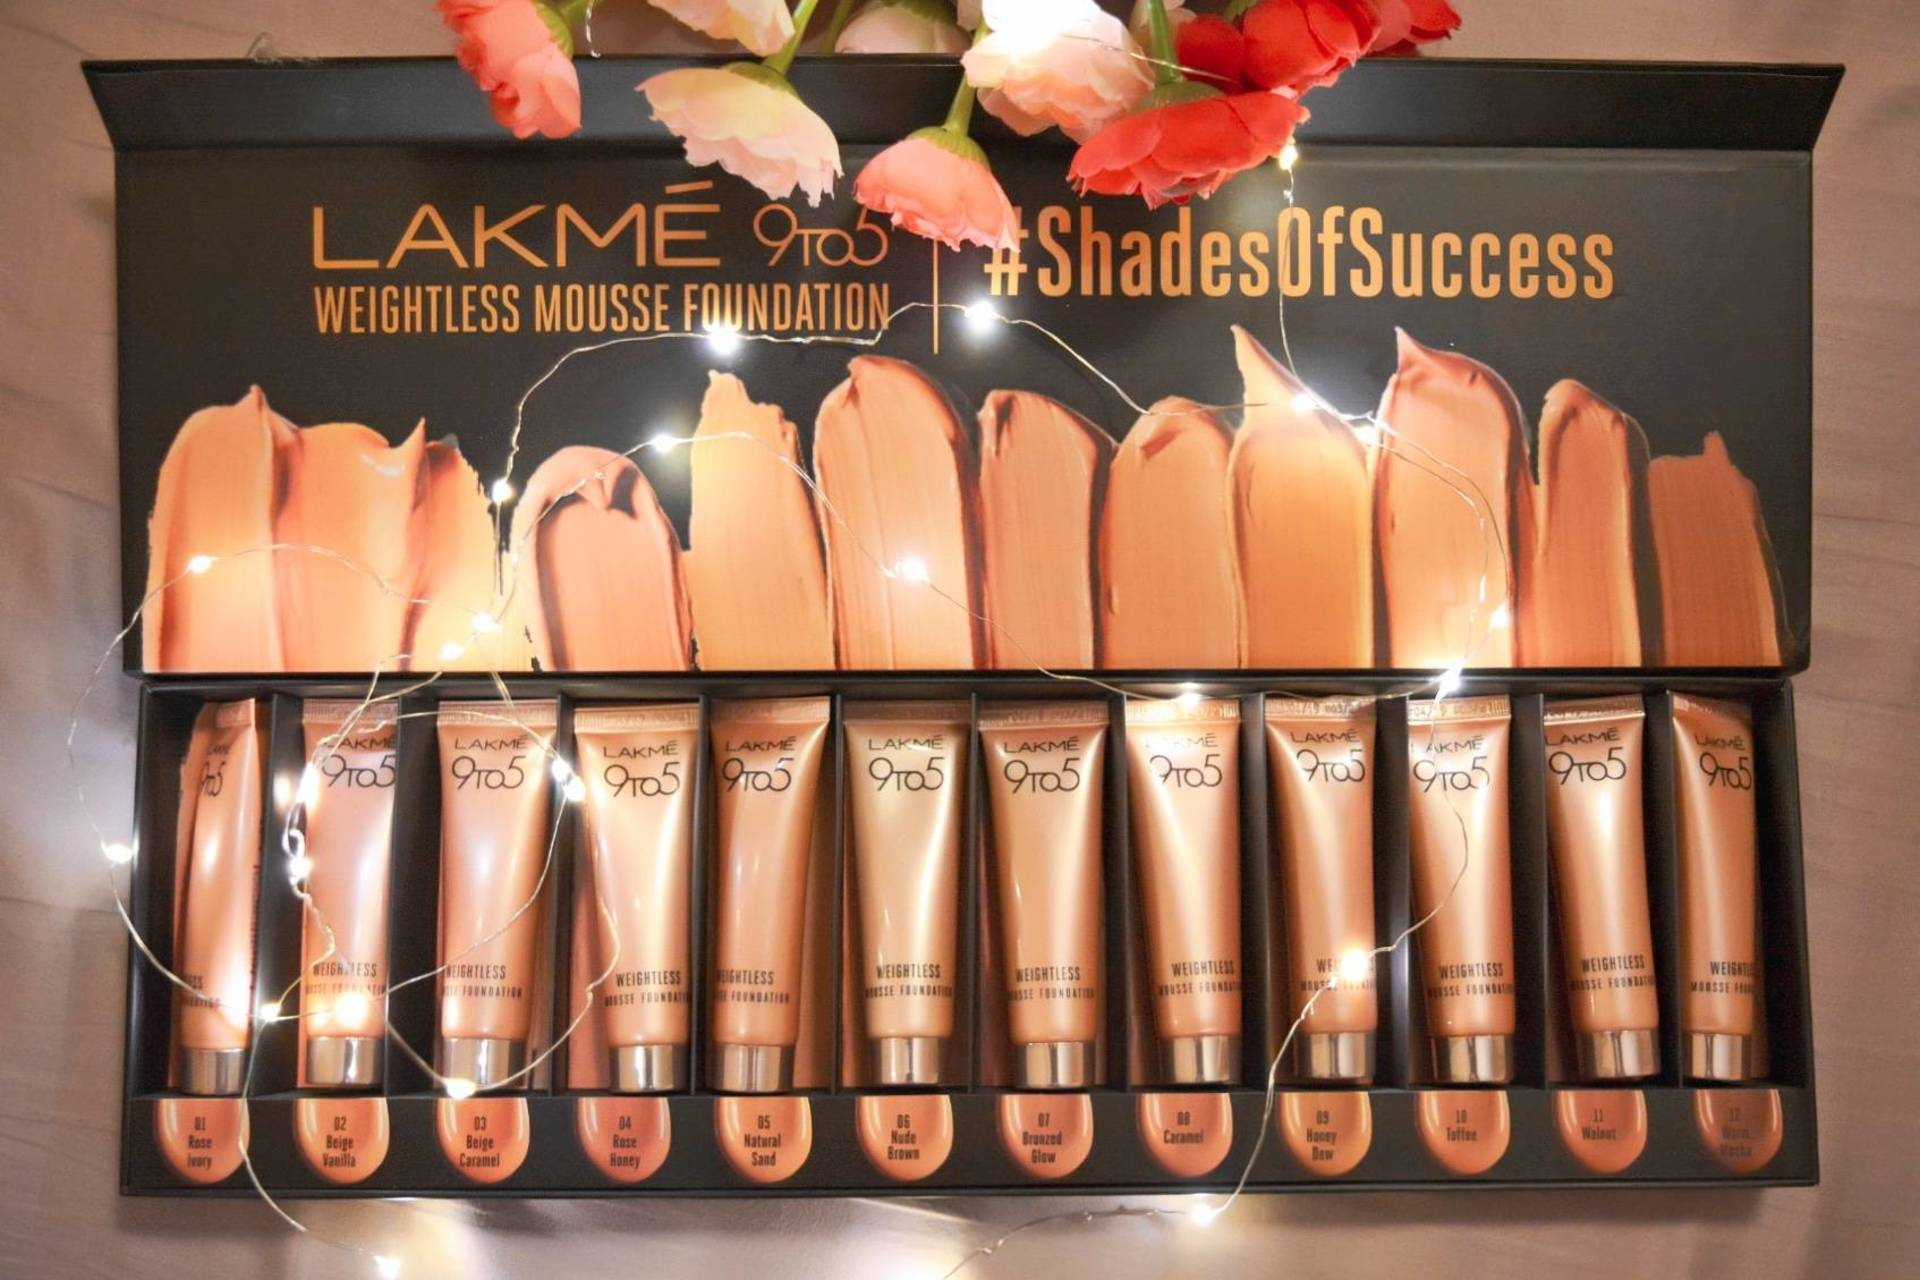 Lakme 9 to 5 Weightless Mousse Foundation Swatches + Review! image